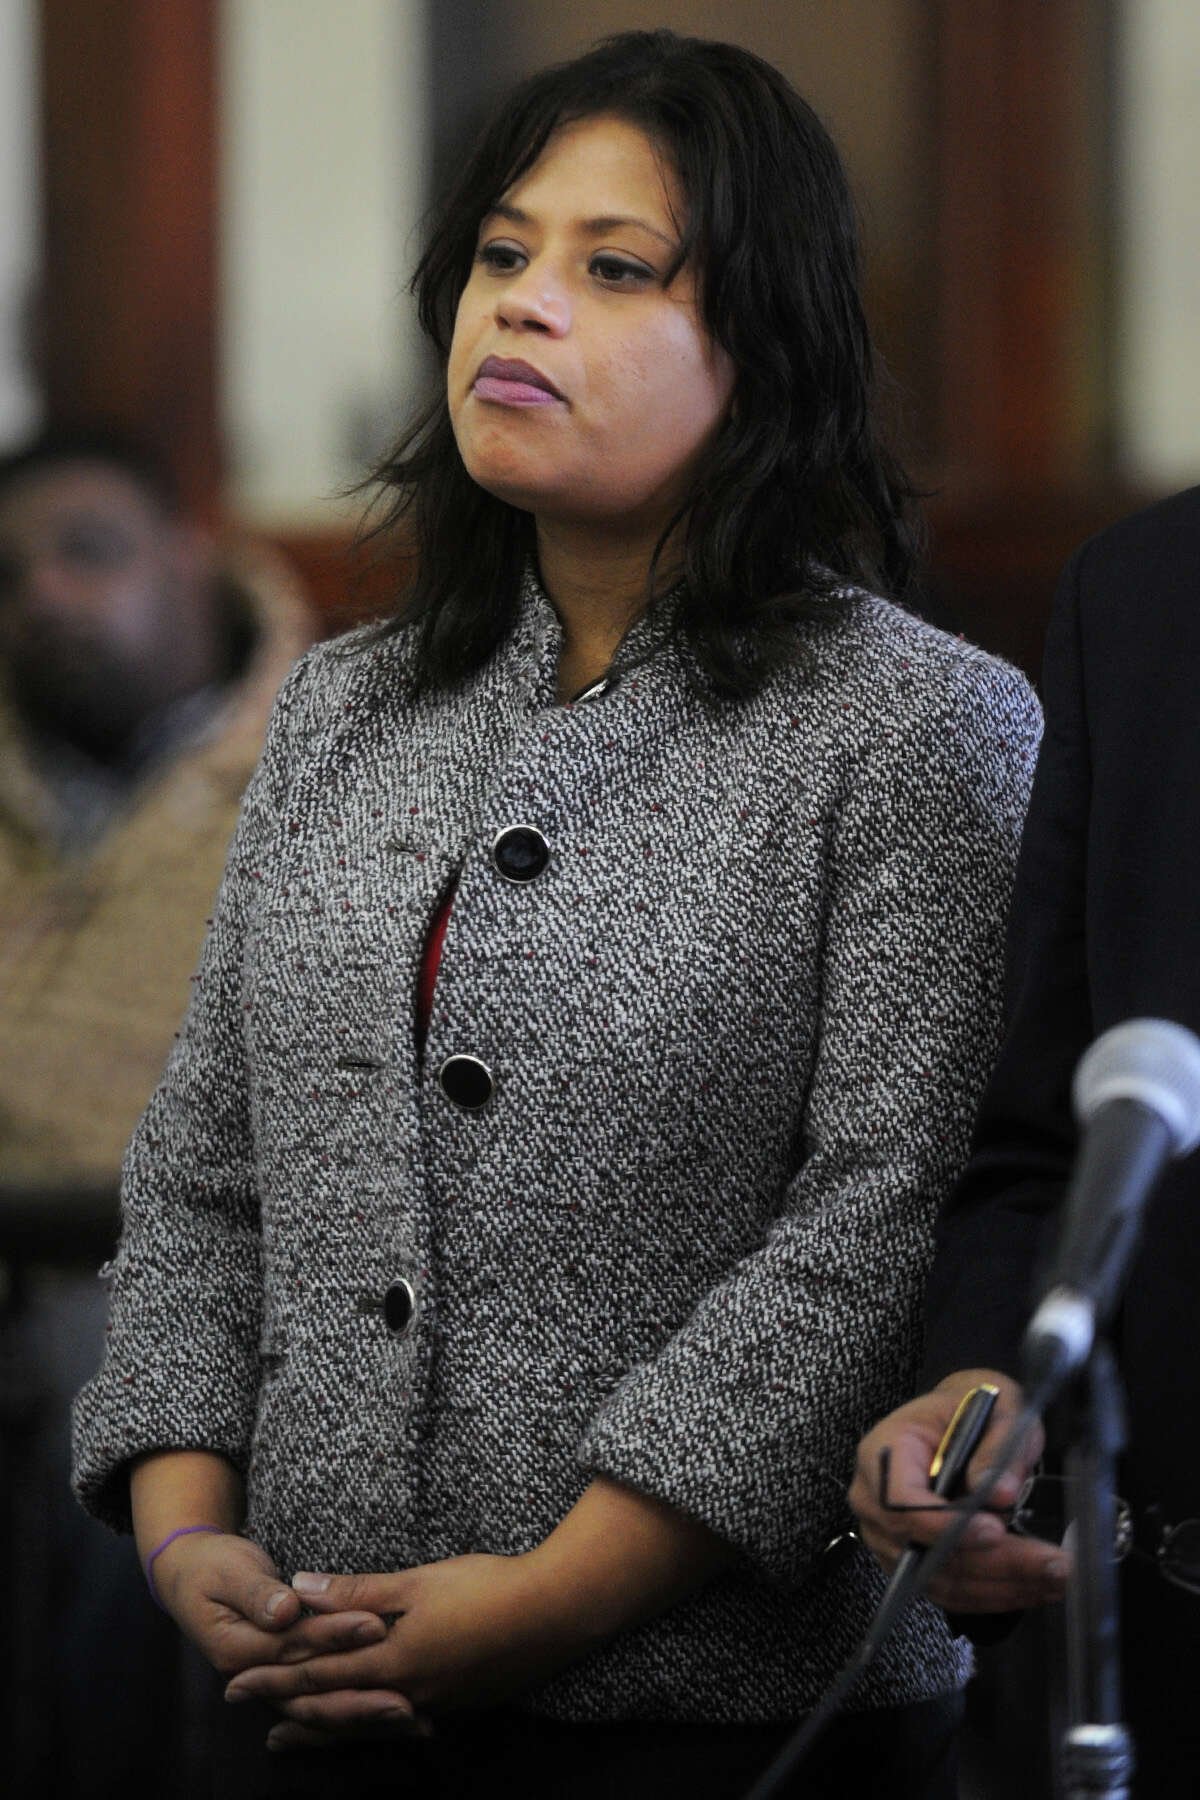 Incoming state Rep. Christina Ayala is arraigned in Superior Court, in Bridgeport, Conn. Dec. 4th, 2012. Ayala is charged with breach of peace after, police say, she slapped her boyfriend following an argument late Monday night at their 49 Hillside Ave. home. Ayala is already awaiting trial in a hit and run case.